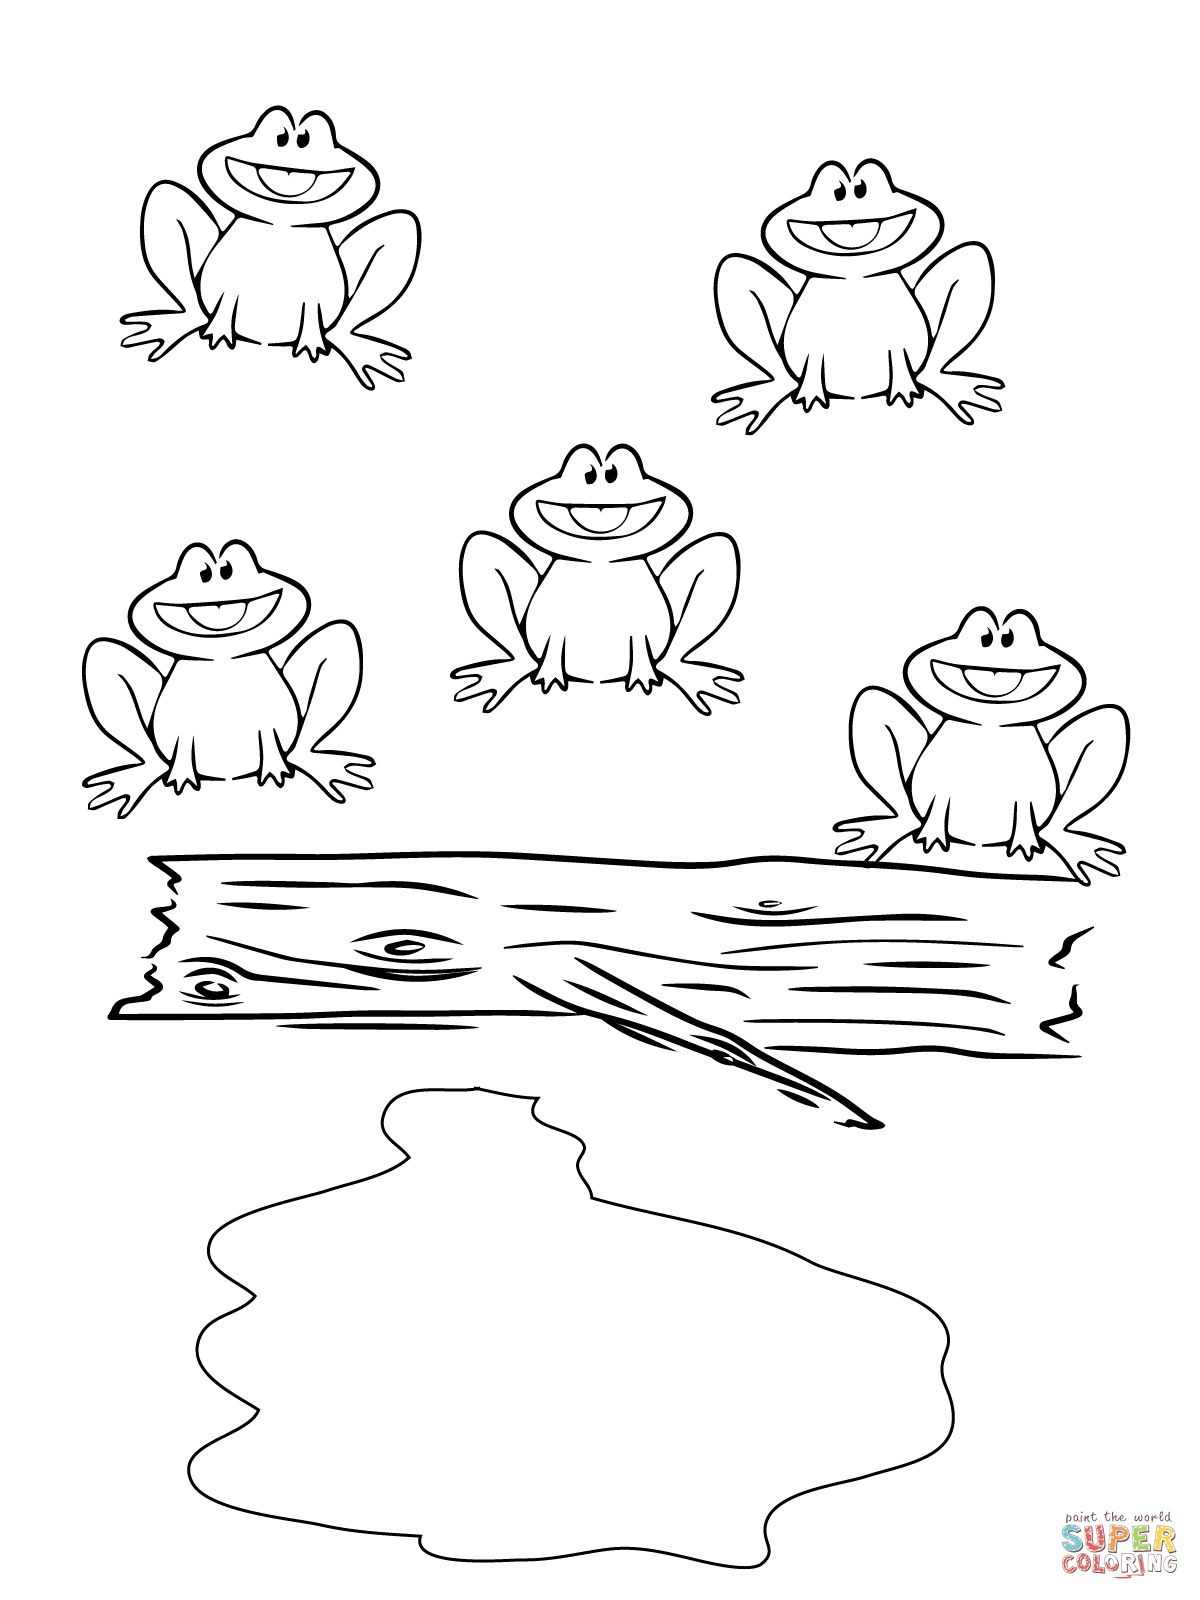 Five Little Speckled Frogs coloring page SuperColoring